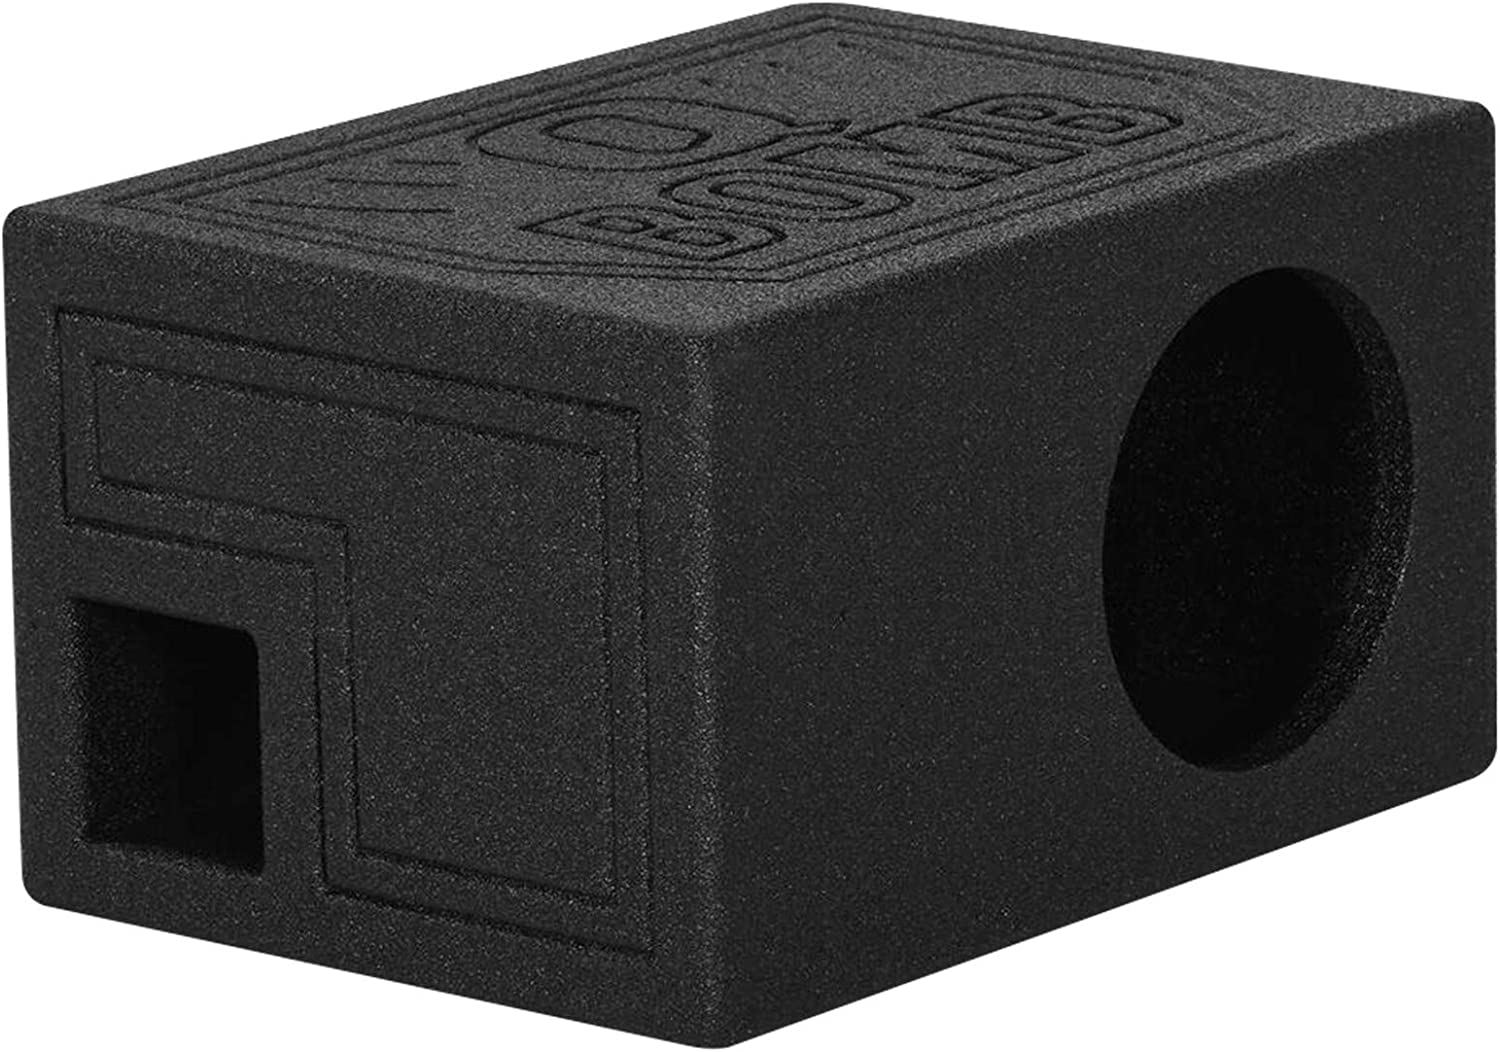 Rockville RQB65 Single 6.5 Ported Subwoofer Enclosure Bedlined Sub Box 1.01 Cu